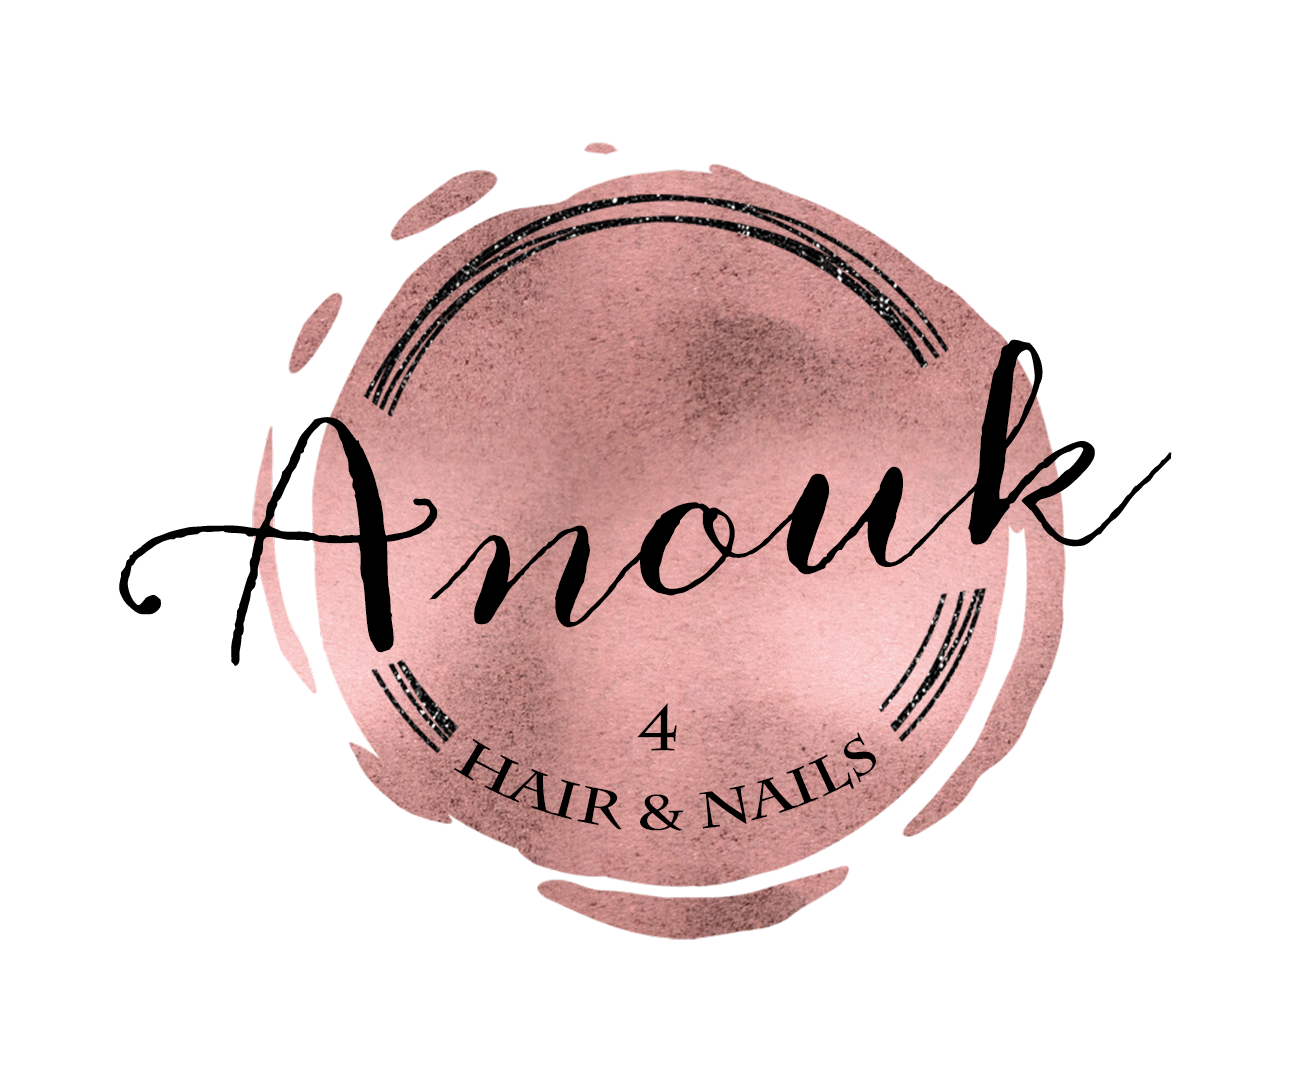 Anouk 4 Hair & Nails